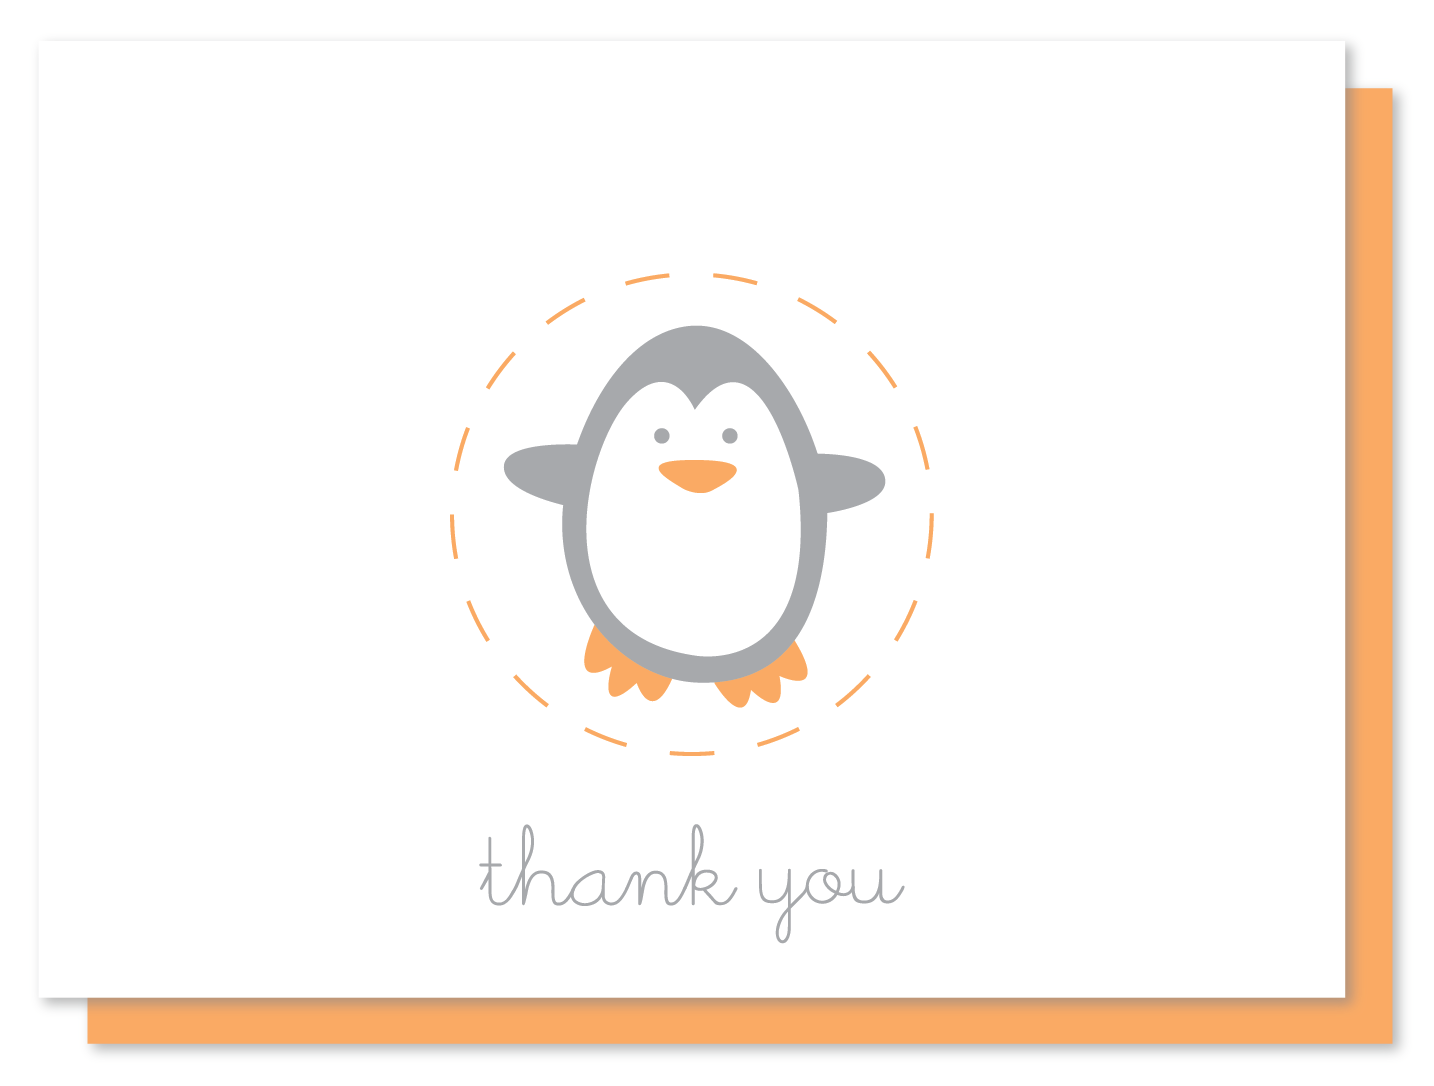 baby thank you cards, baby note cards   madebycristinamarie.com